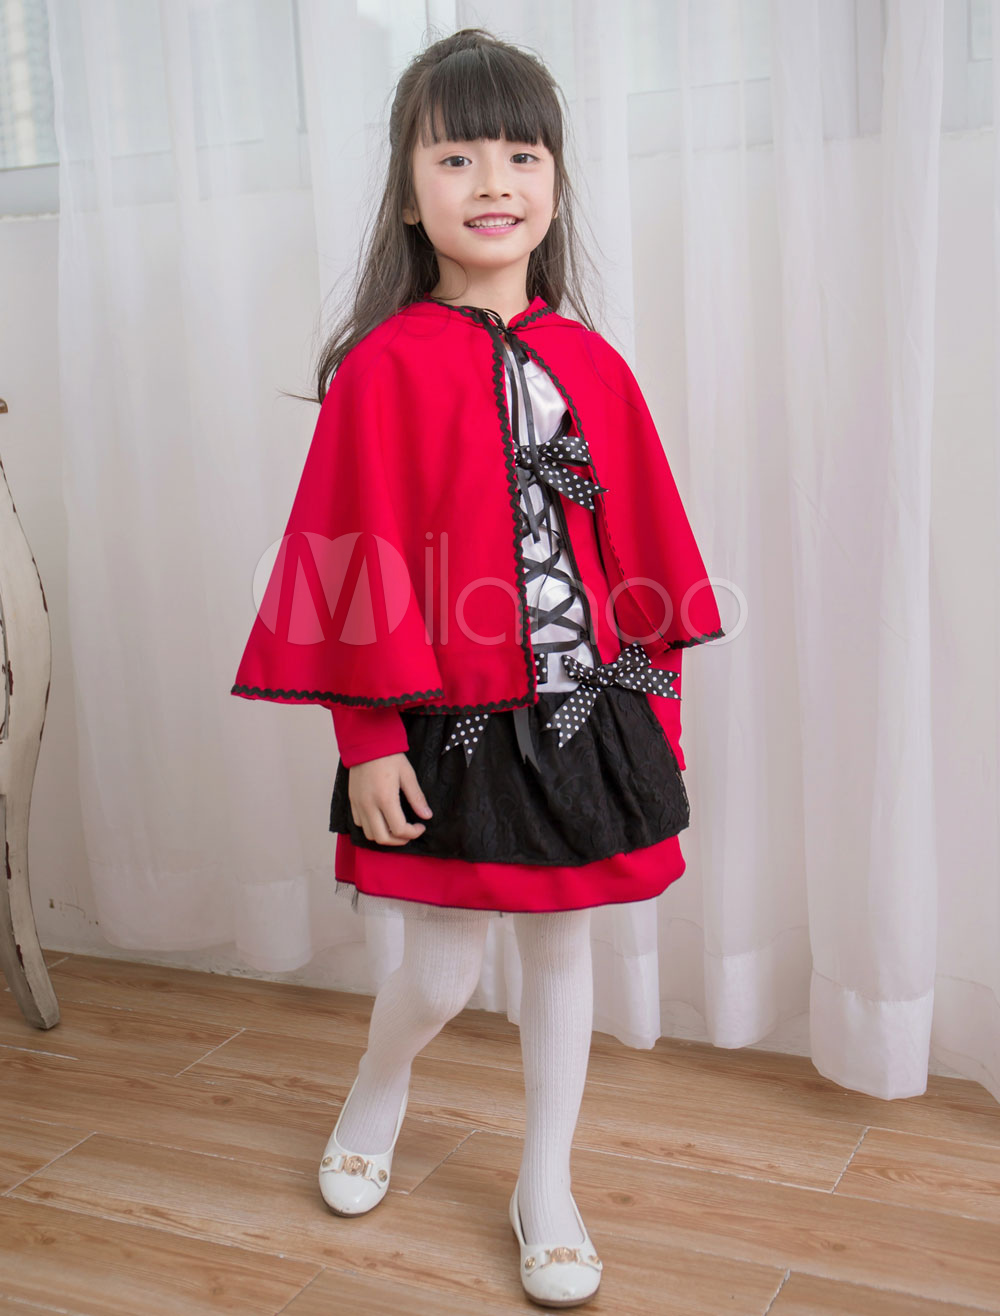 Buy Red Riding Hood Costume Kids' Cartoon Cosplay Dress With Cloak For Girl Halloween for $21.99 in Milanoo store